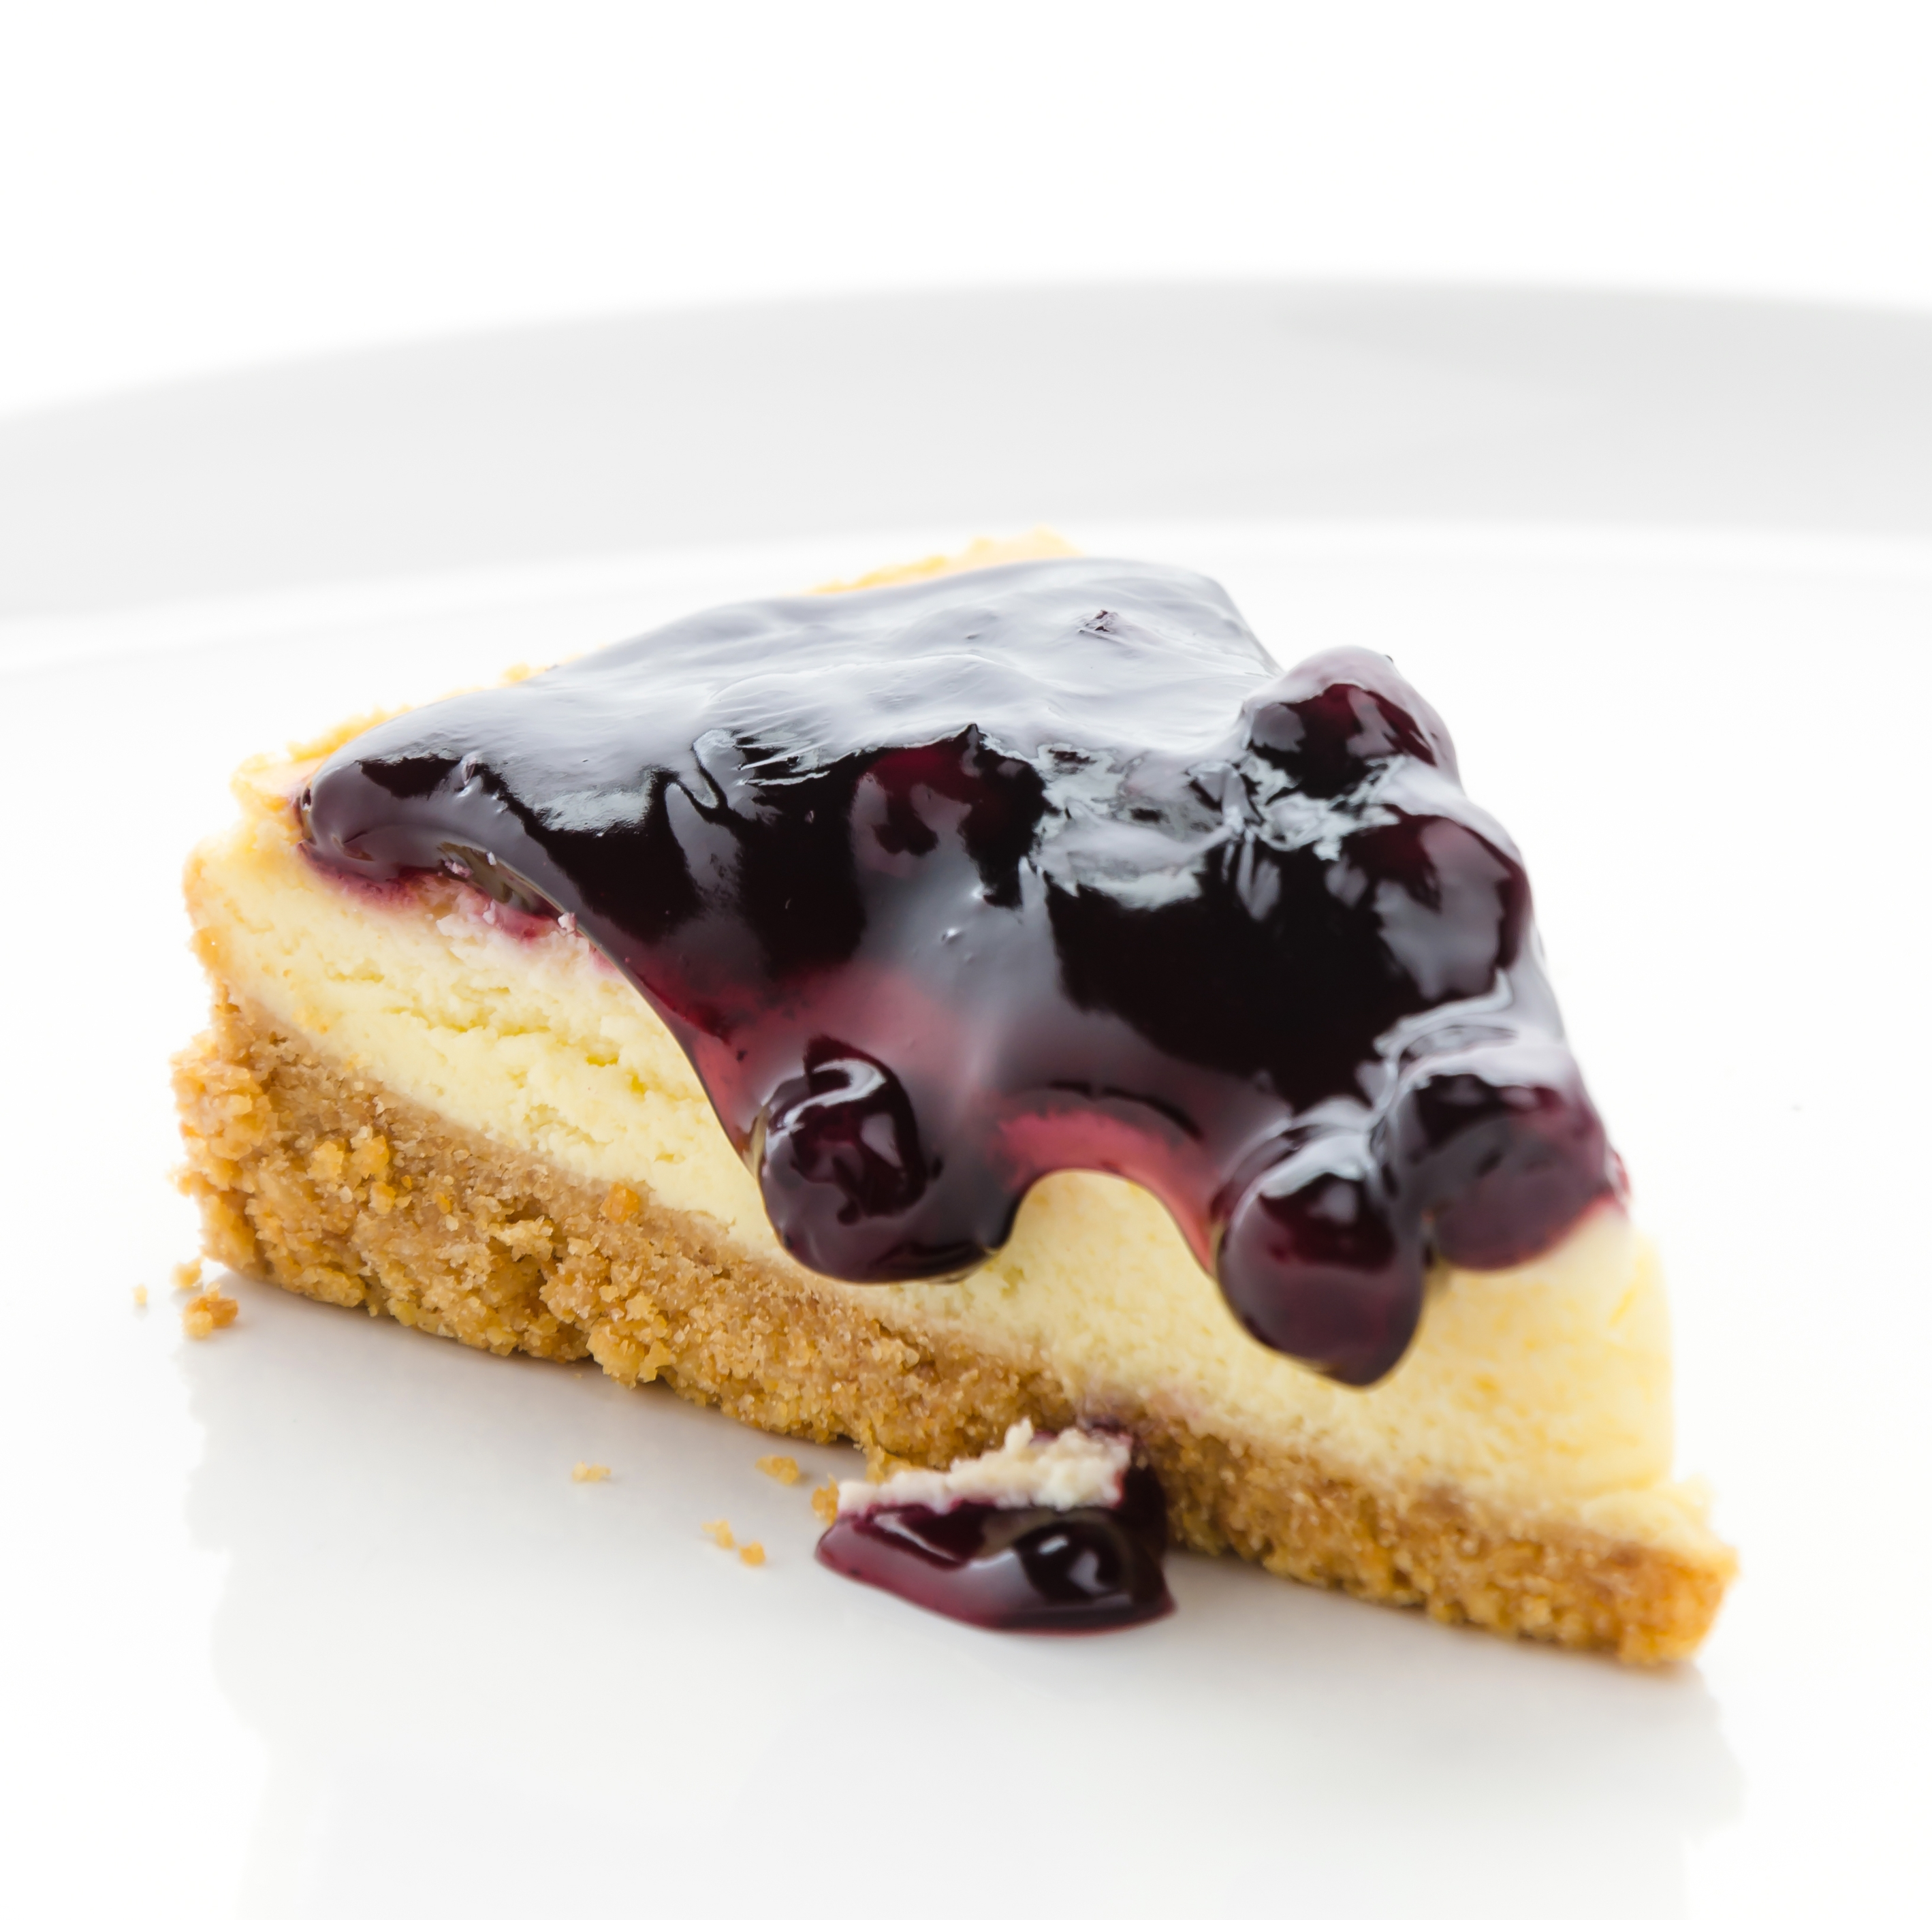 Blueberry Cheesecake Day Days Of The Year